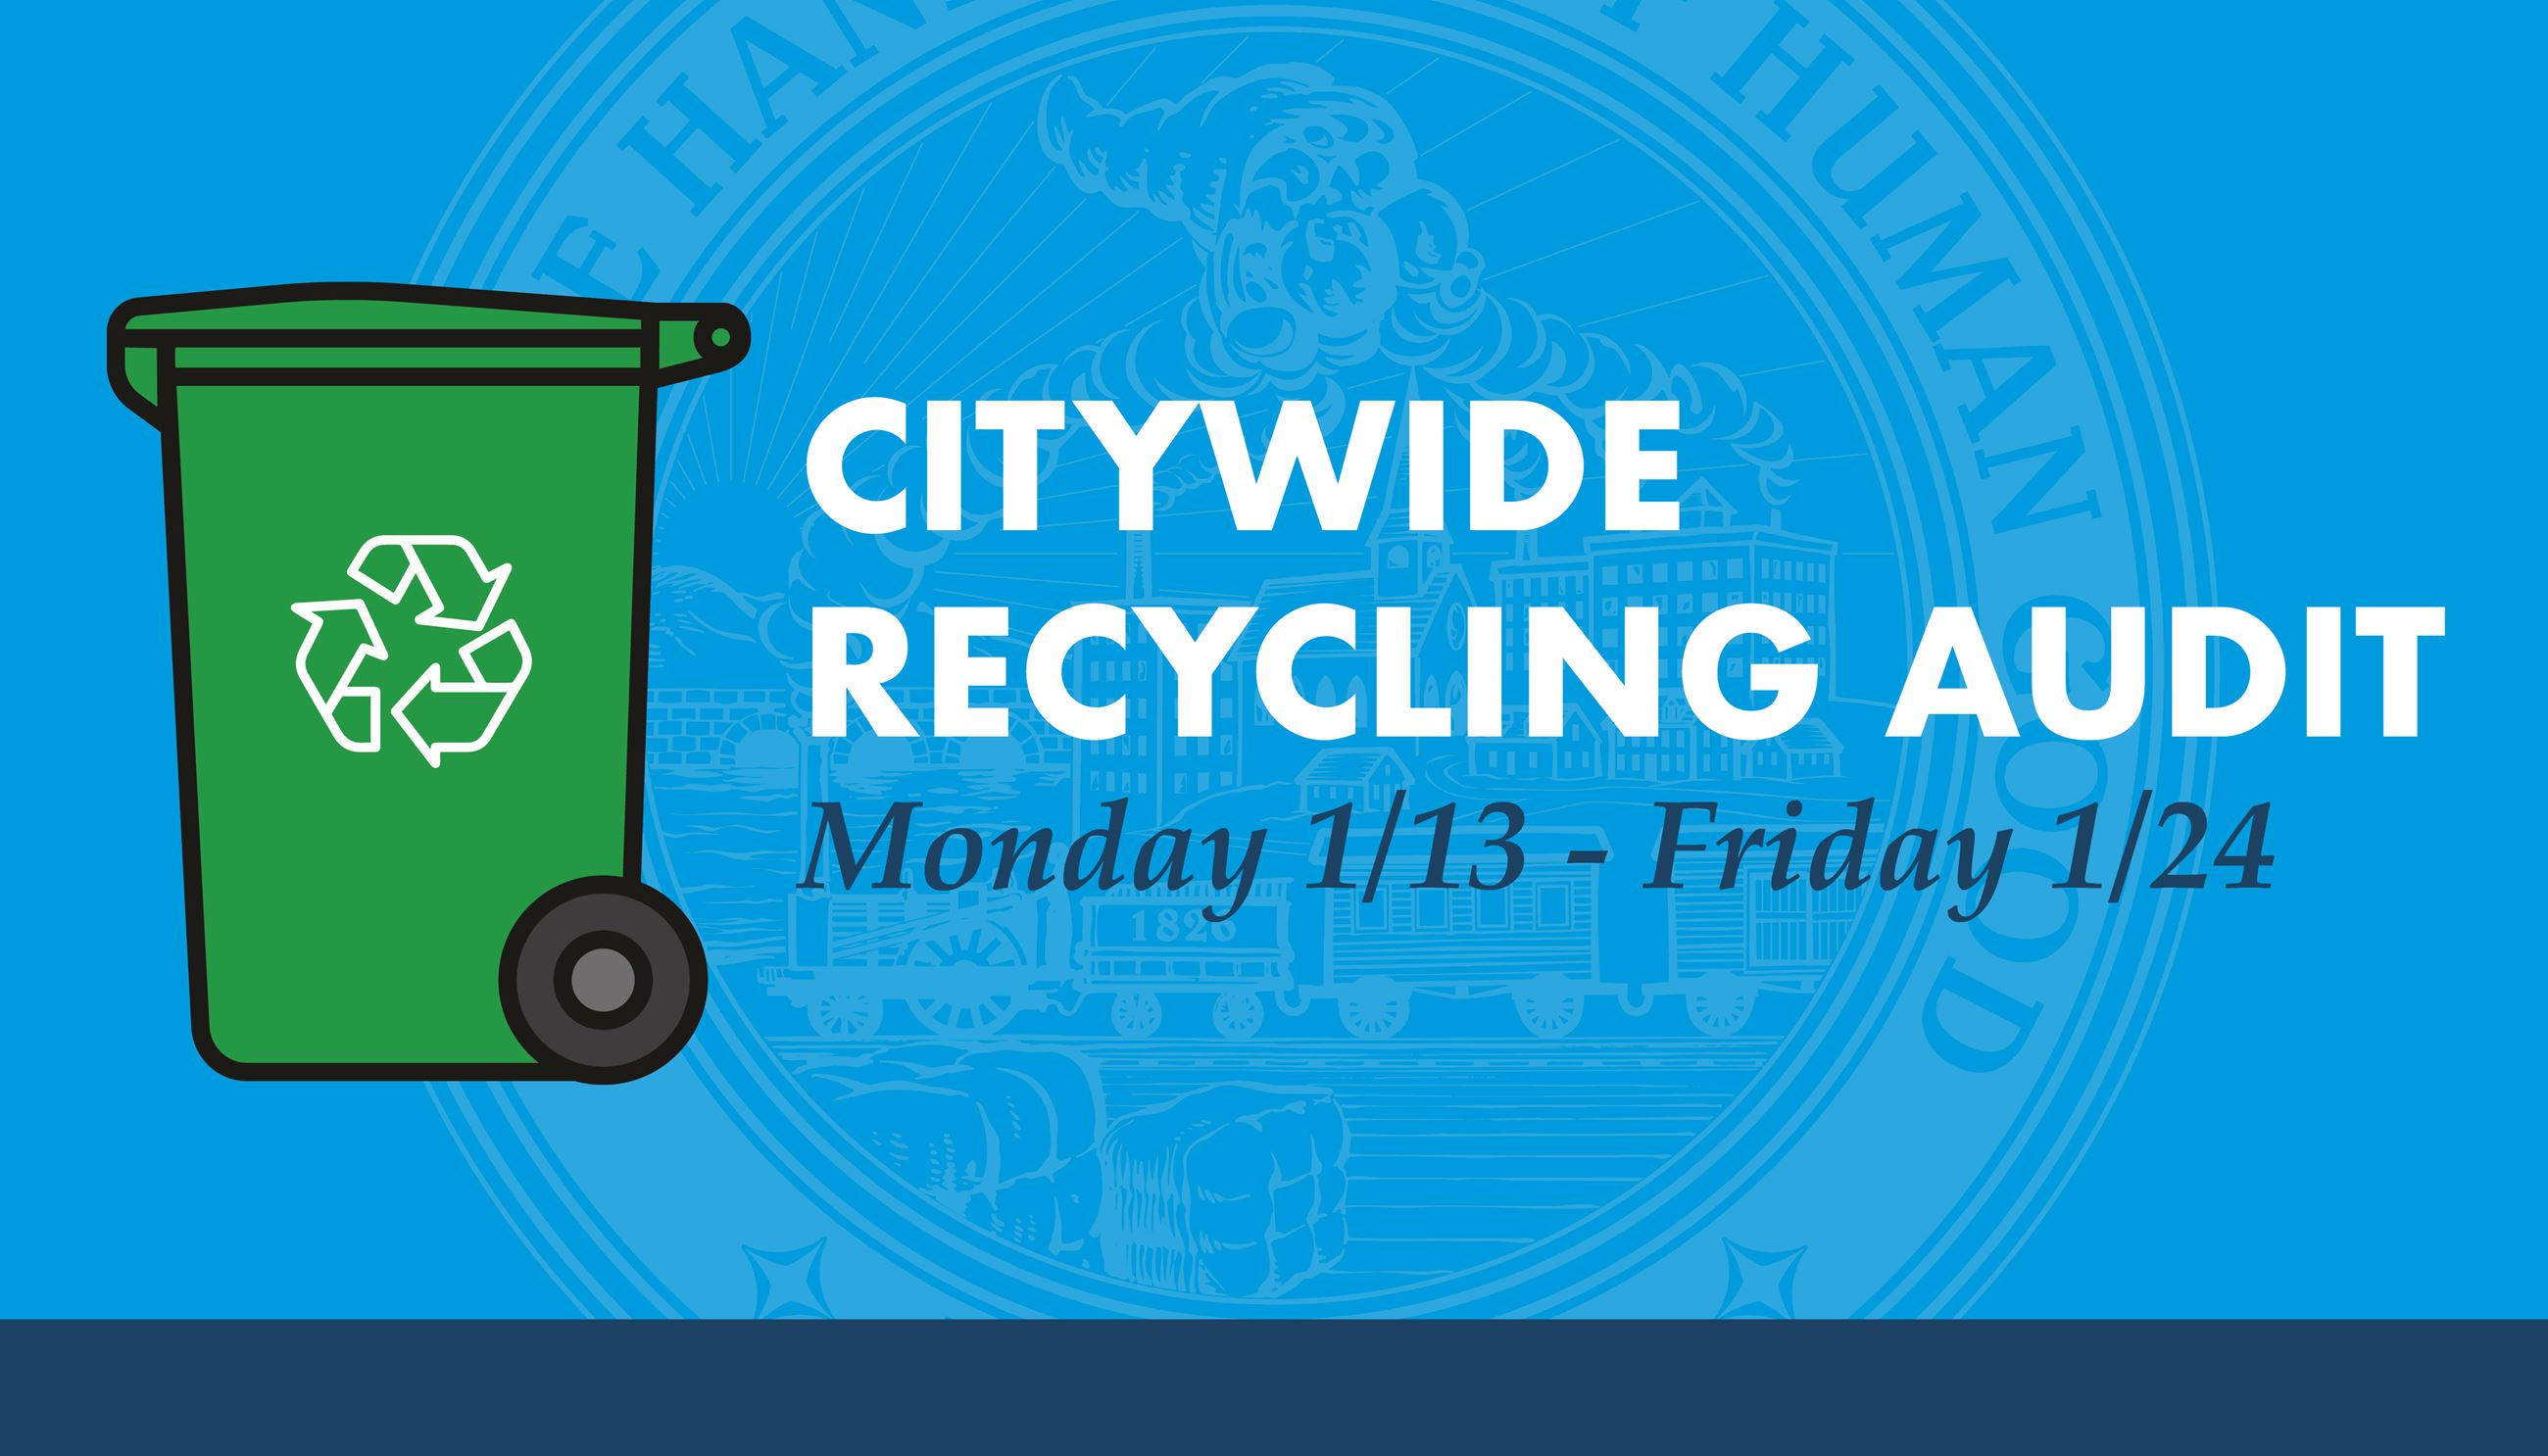 Citywide Recycling Audit 2